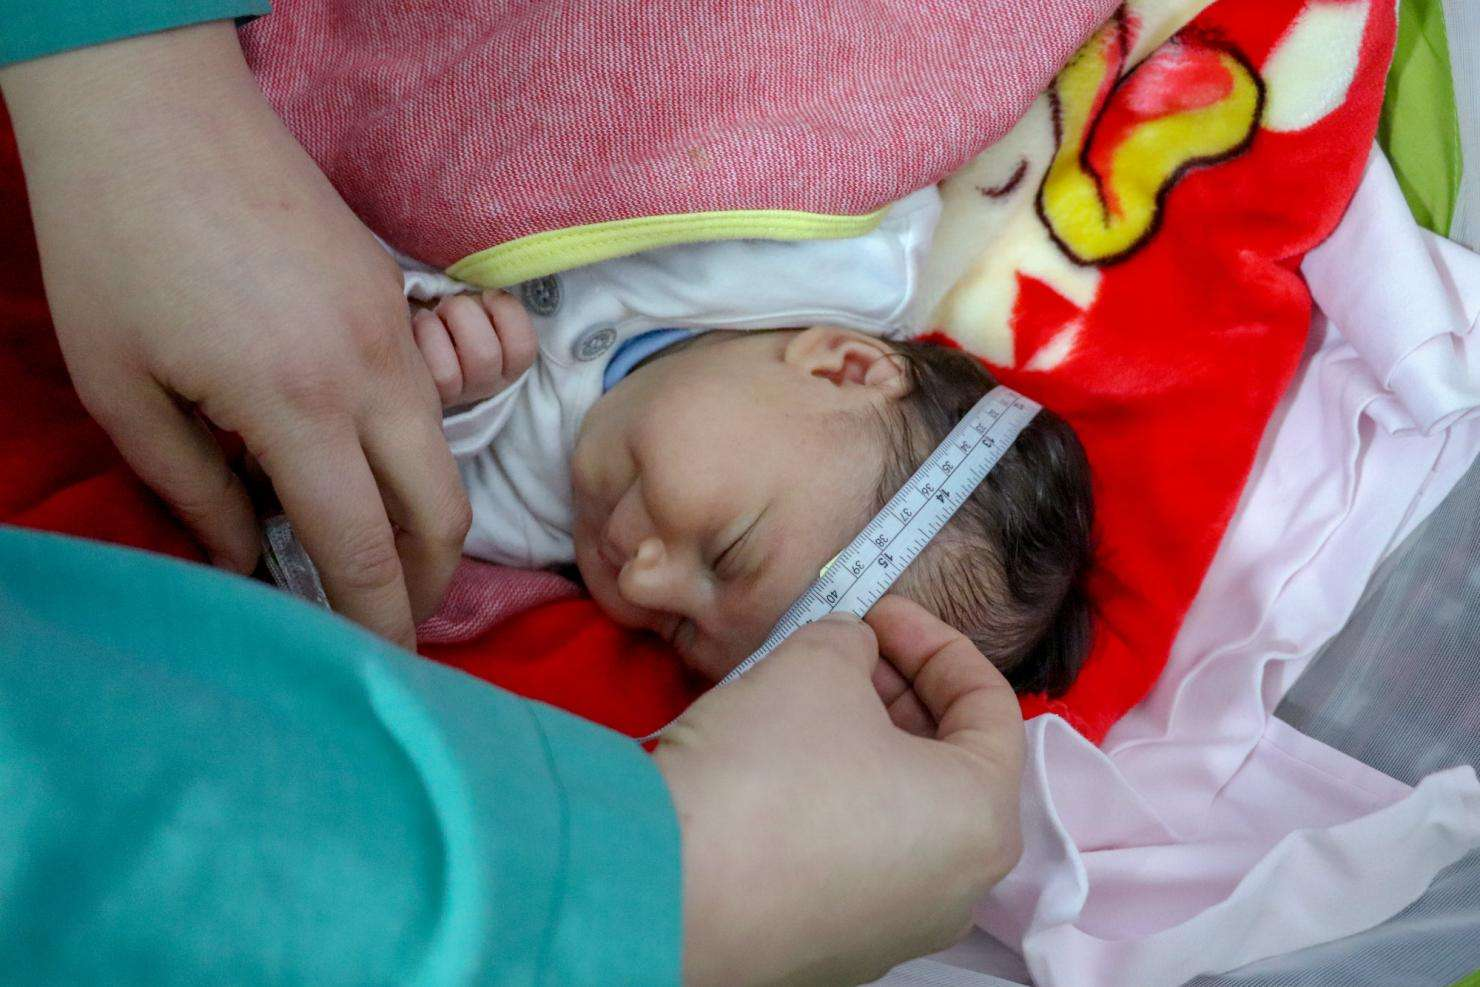 An MSF midwife cares for a newborn in Lebanon.